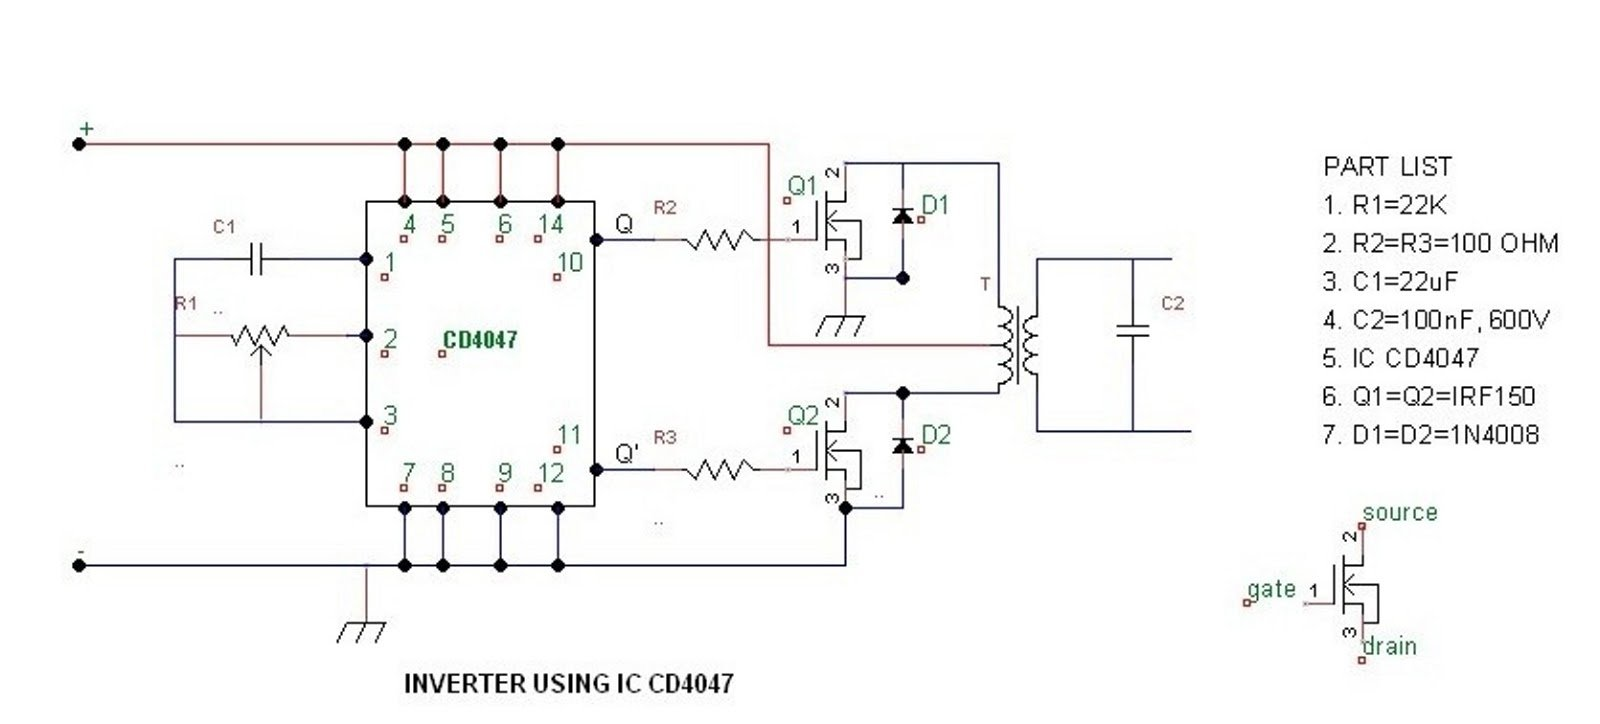 100 w inverter circuit diagram ngs wiring diagram